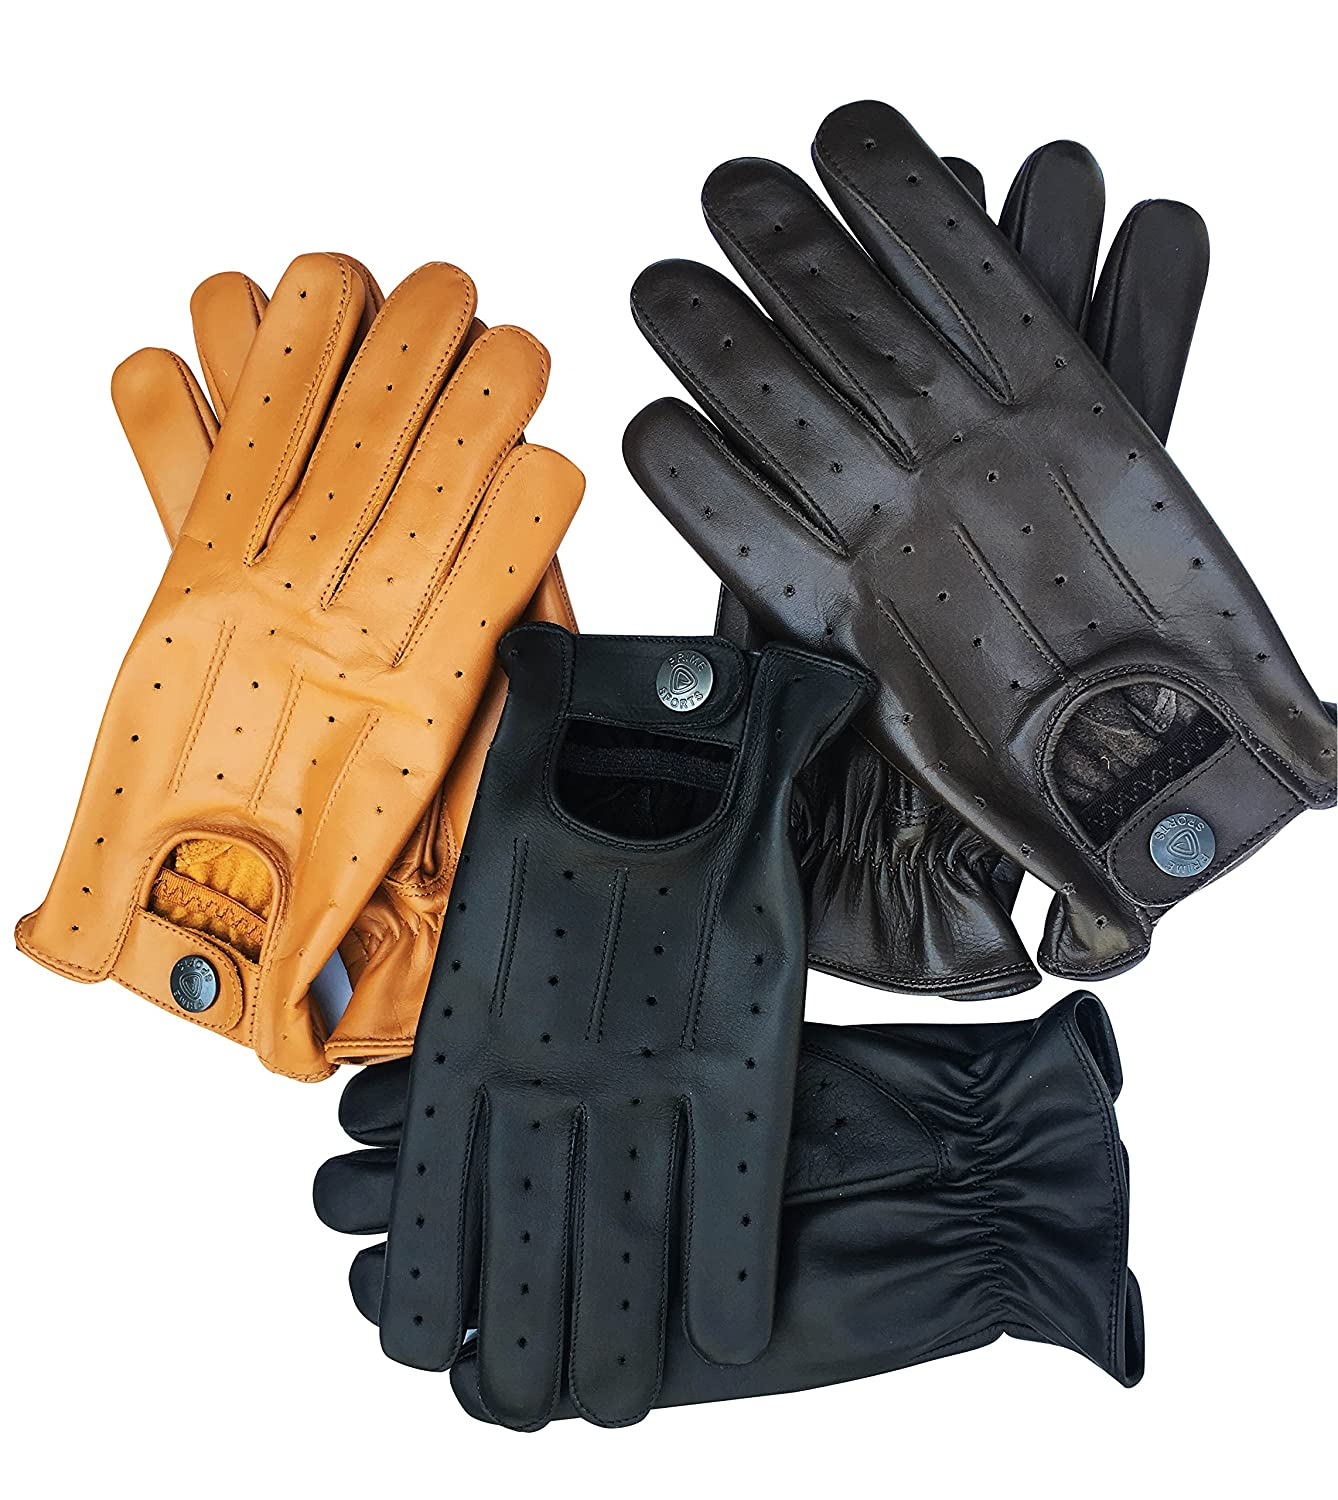 Prime Sports Men's Classic Genuine Soft Unlined Leather Driving Gloves D-7012 PRIME LEATHER